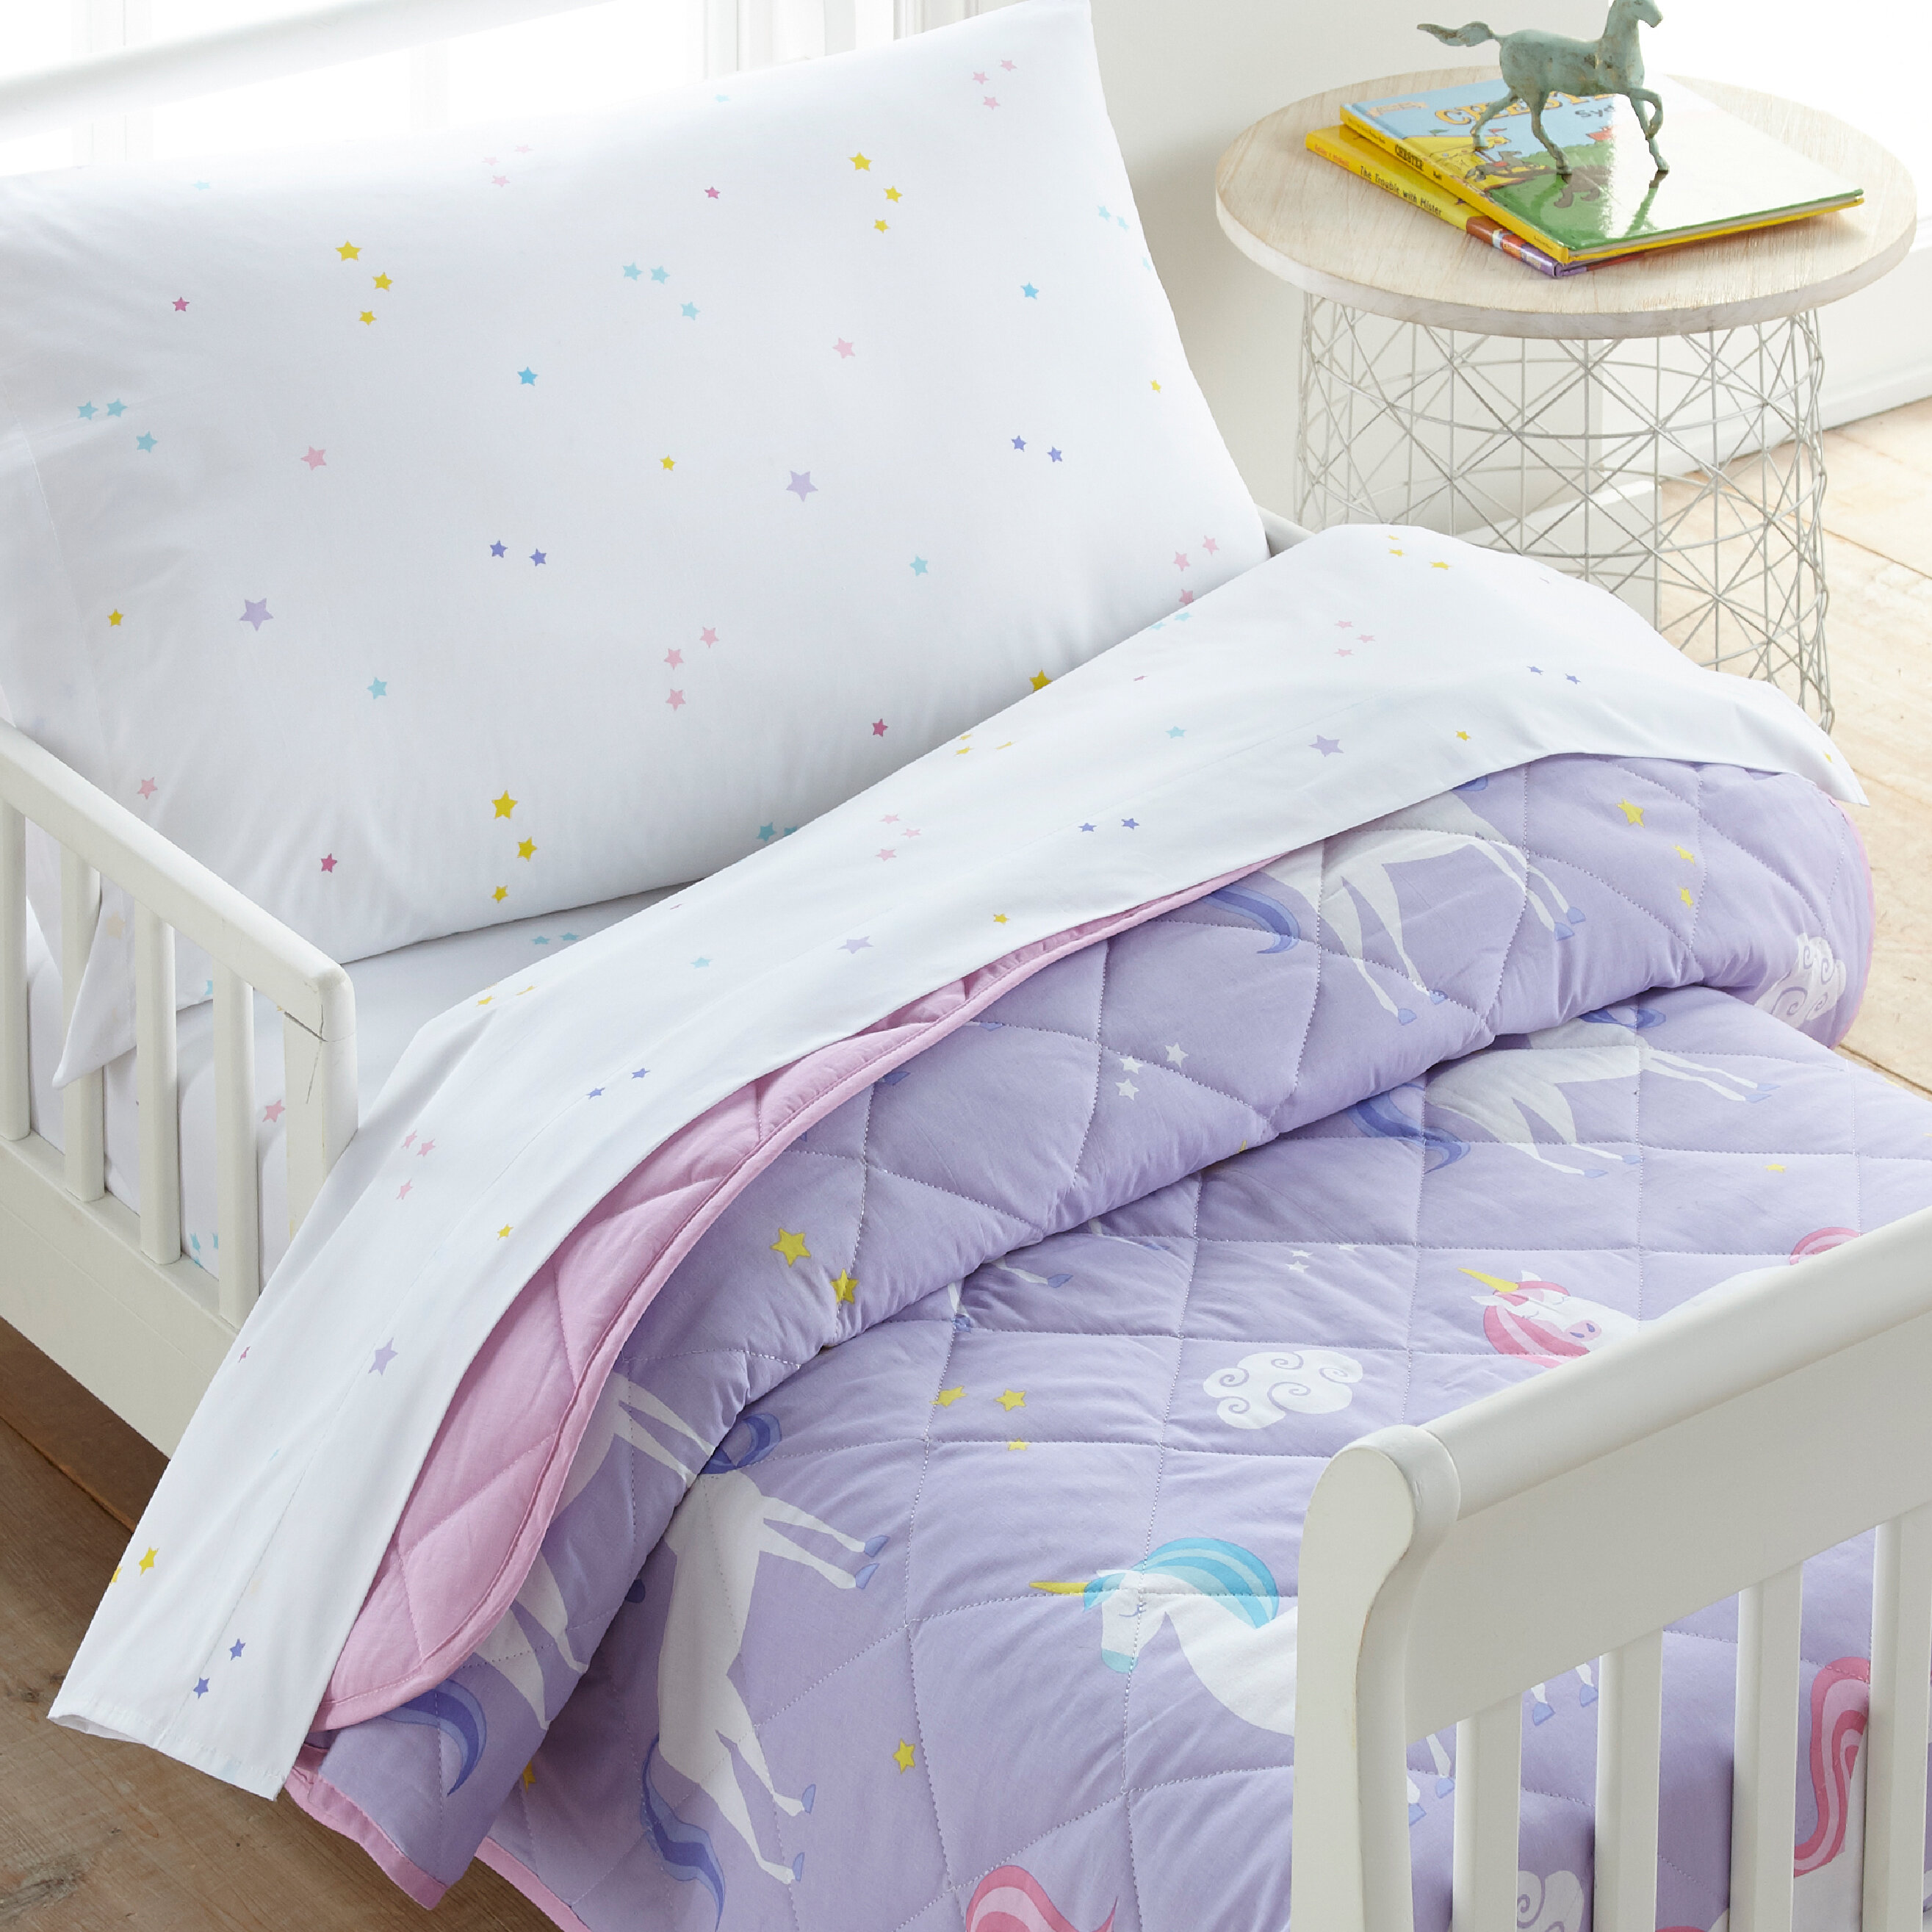 Wildkin Unicorn Cotton 4 Piece Toddler Bedding Set Reviews Wayfair